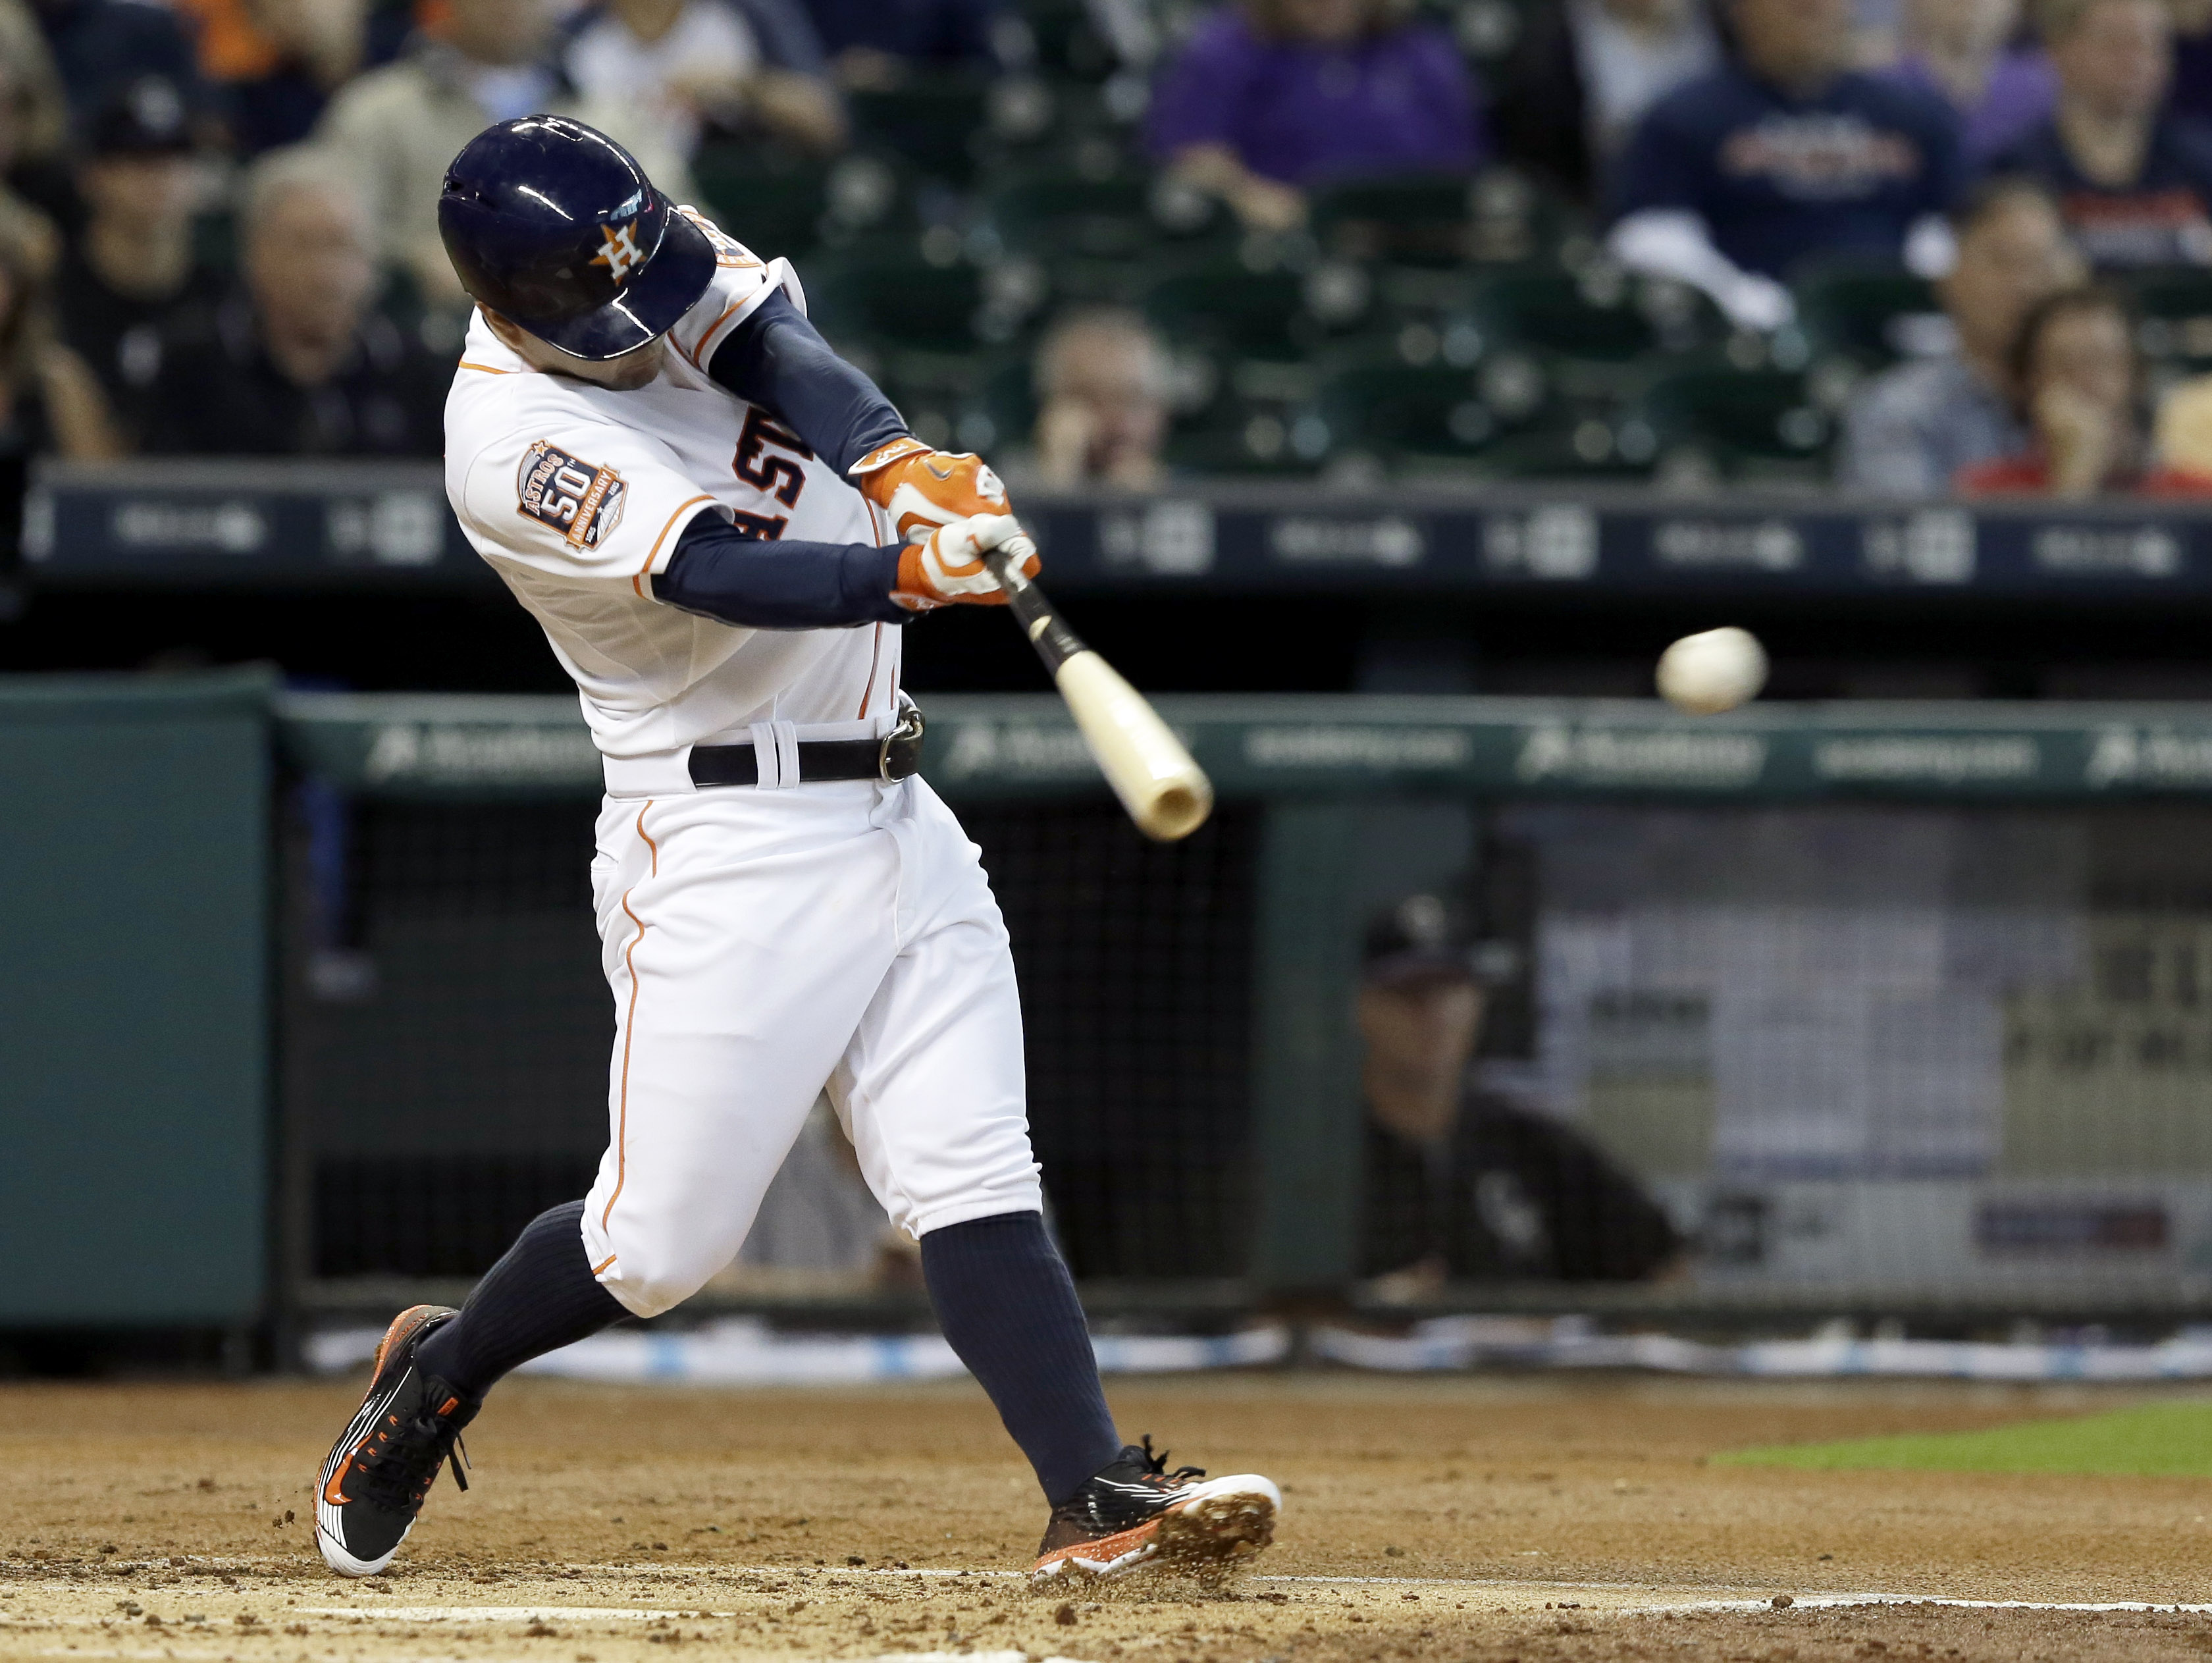 Houston Astros' Jose Altuve hits an RBI single against the Colorado Rockies in the first inning of a baseball game Tuesday, June 16, 2015, in Houston. (AP Photo/Pat Sullivan)